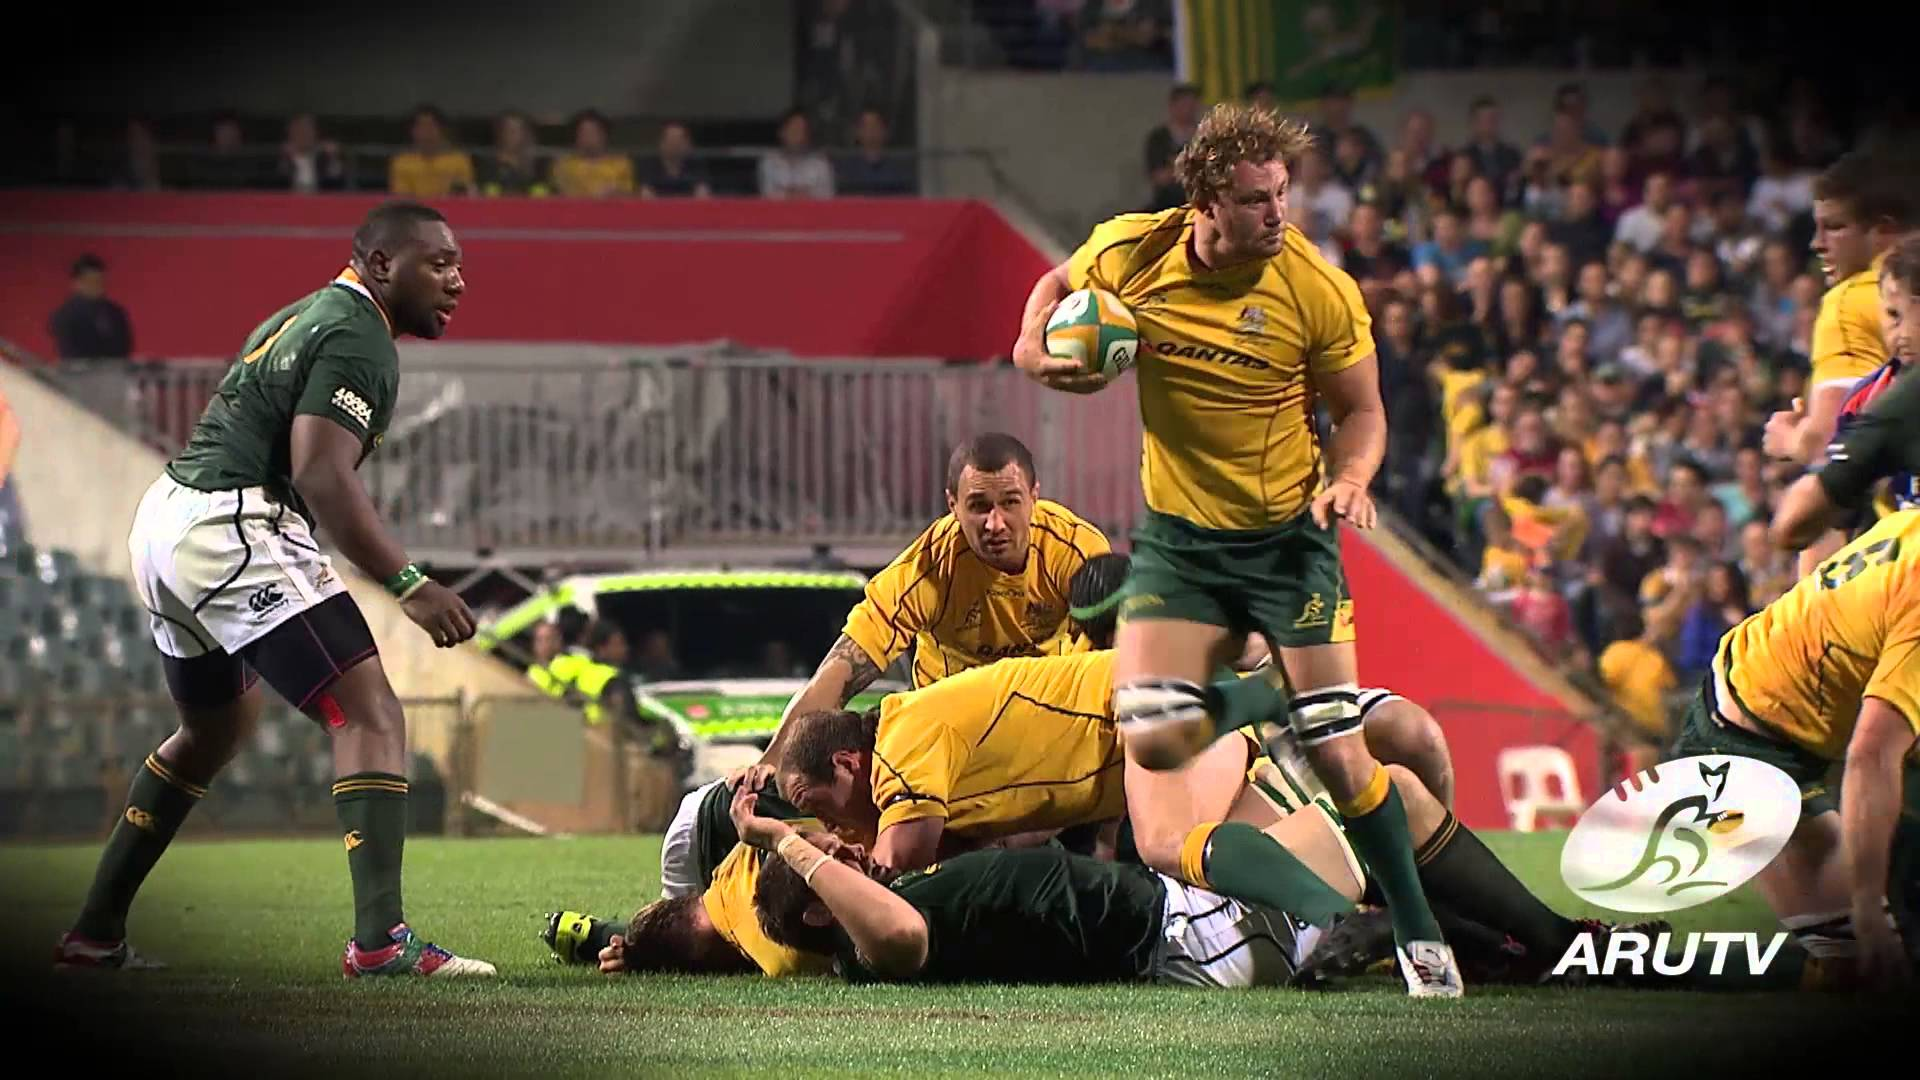 The Australian Rugby Union